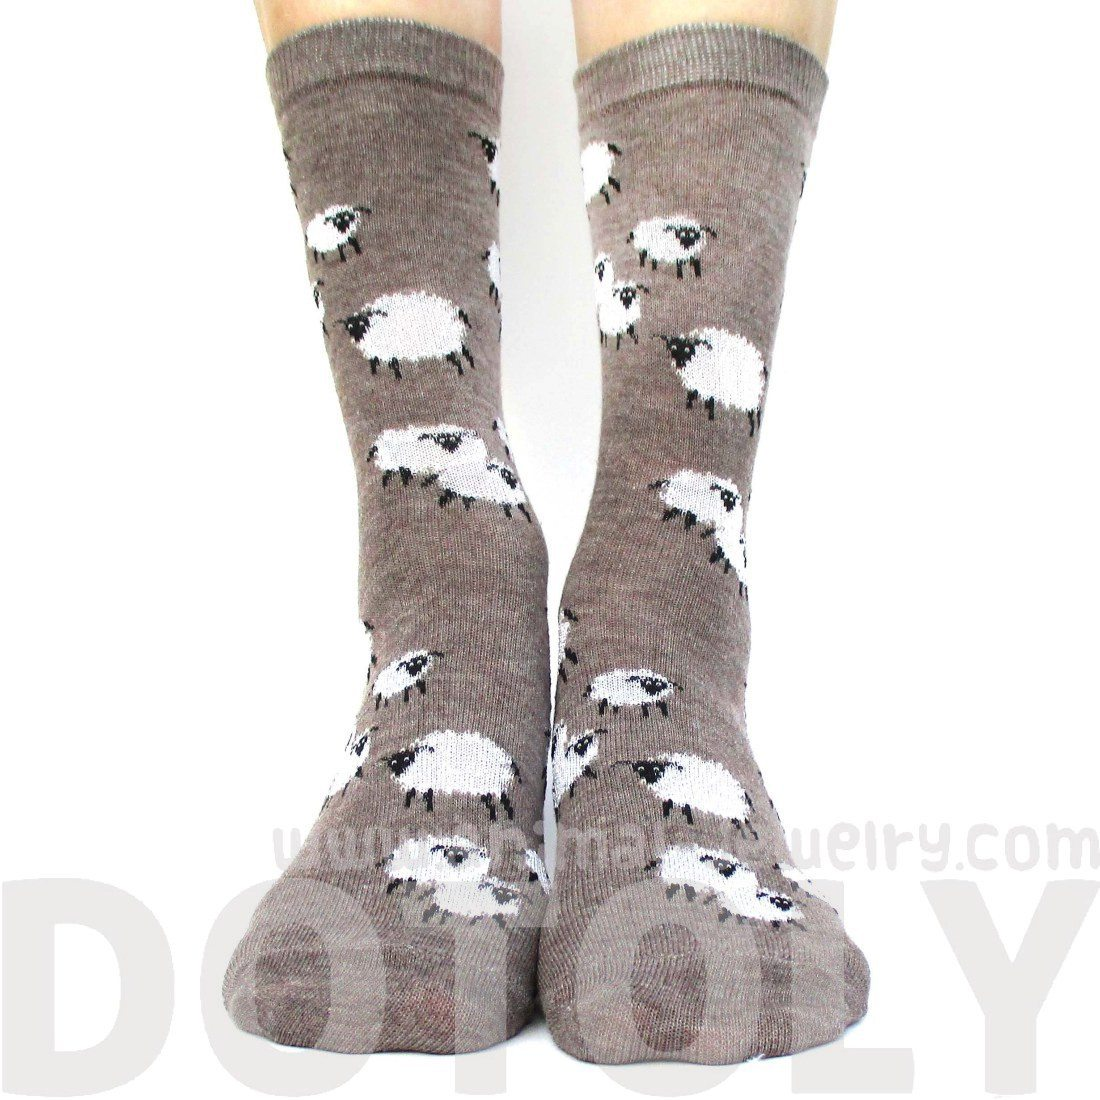 Sheep Farm Novelty Printed Fluffy Long Socks for Women in Light Brown